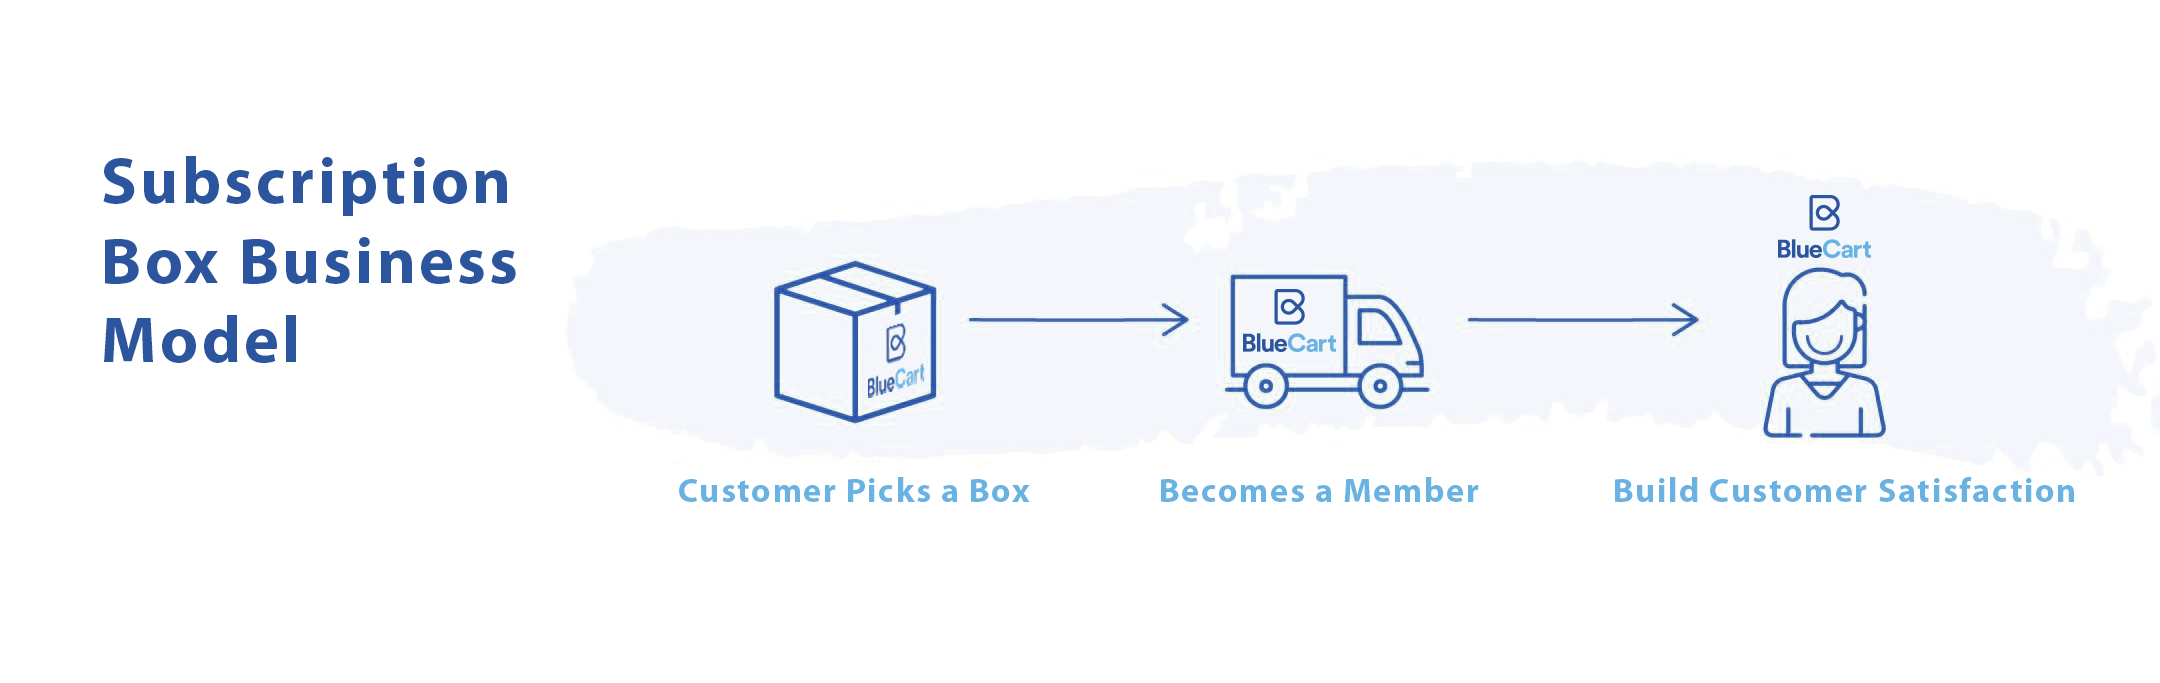 Subscription Box Business Model